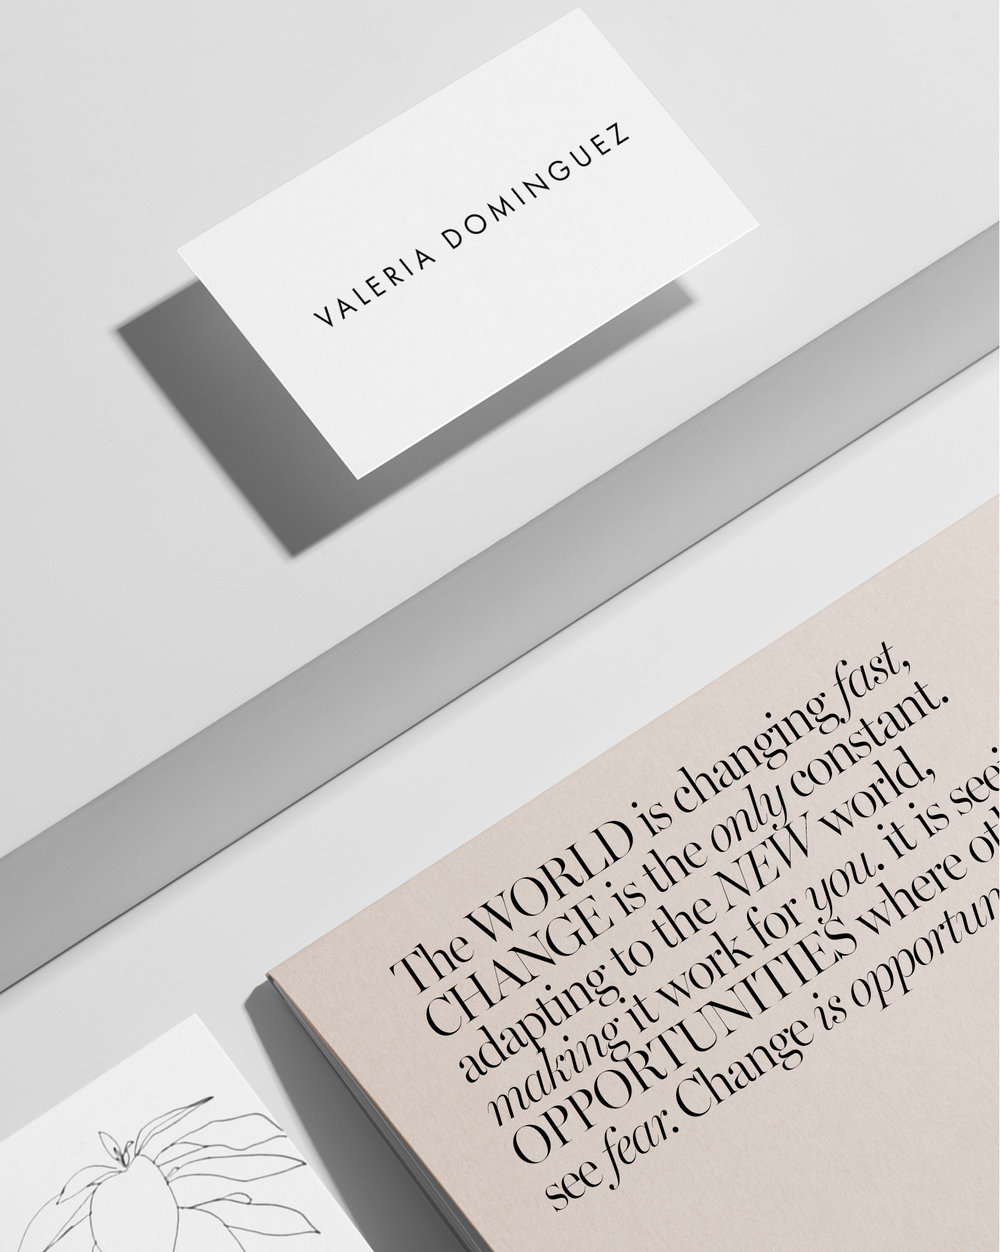 branding-valeria-dominguez-behance-2.jpg